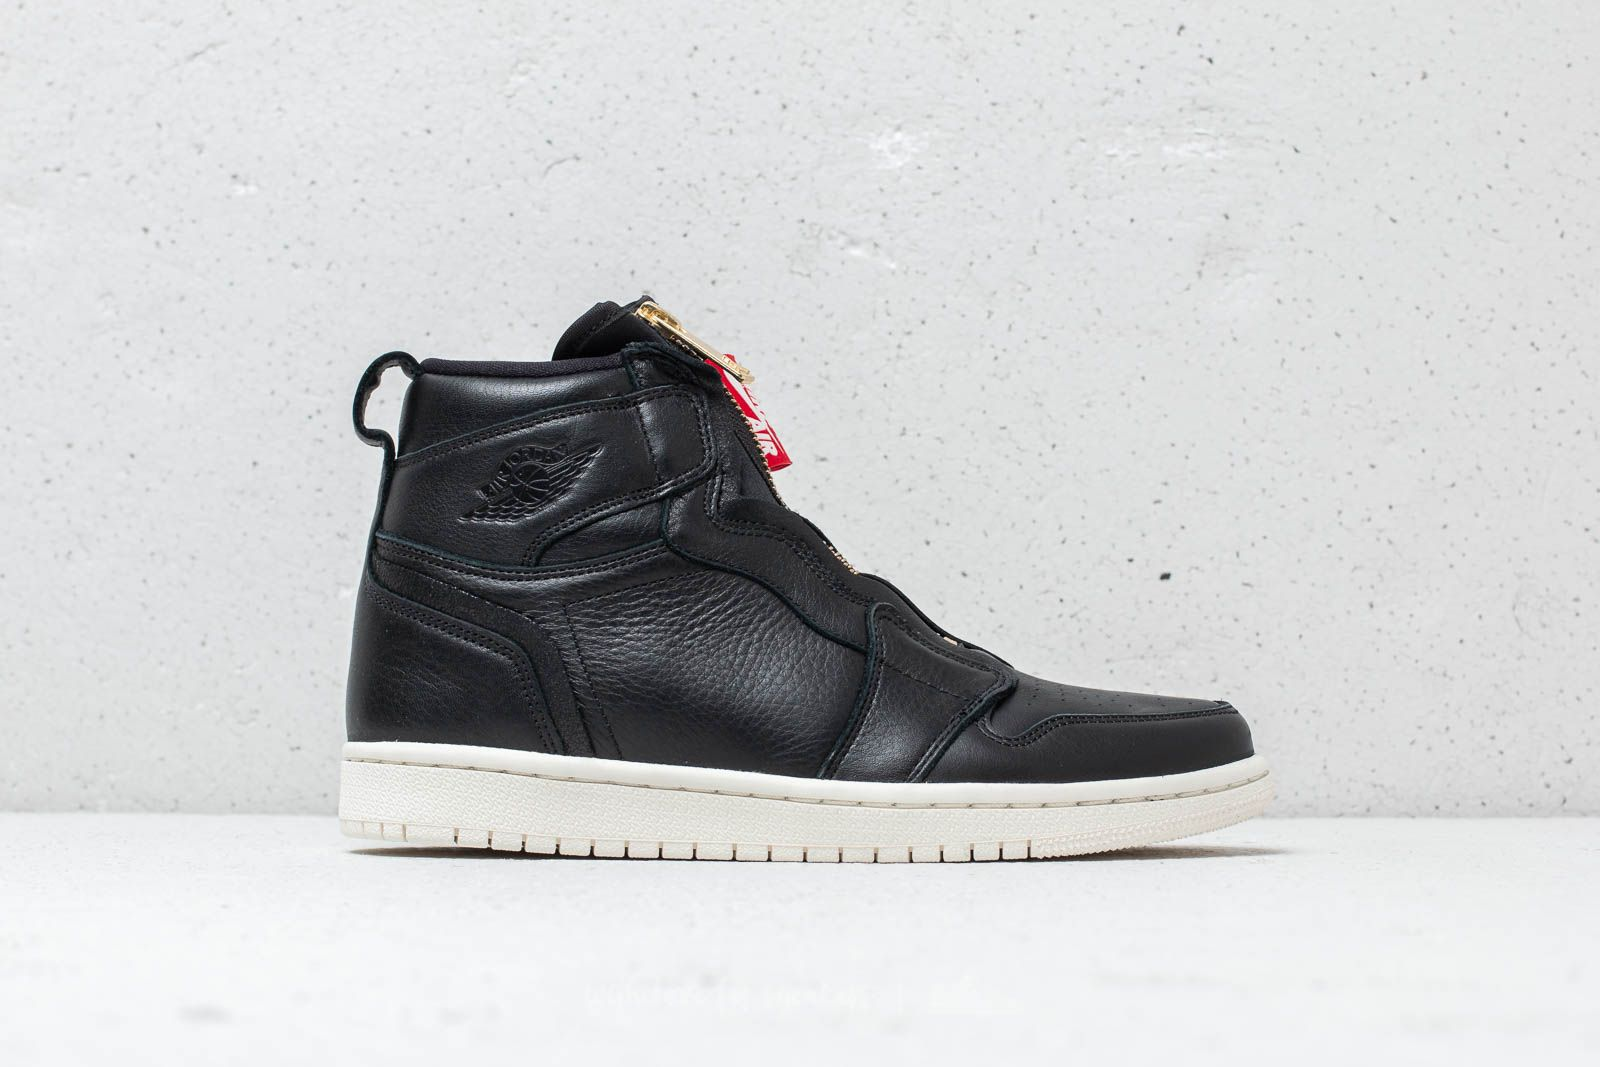 new concept 0a491 13c74 Air Jordan 1 High Zip Wmns Black/ Sail-University Red a muy buen precio